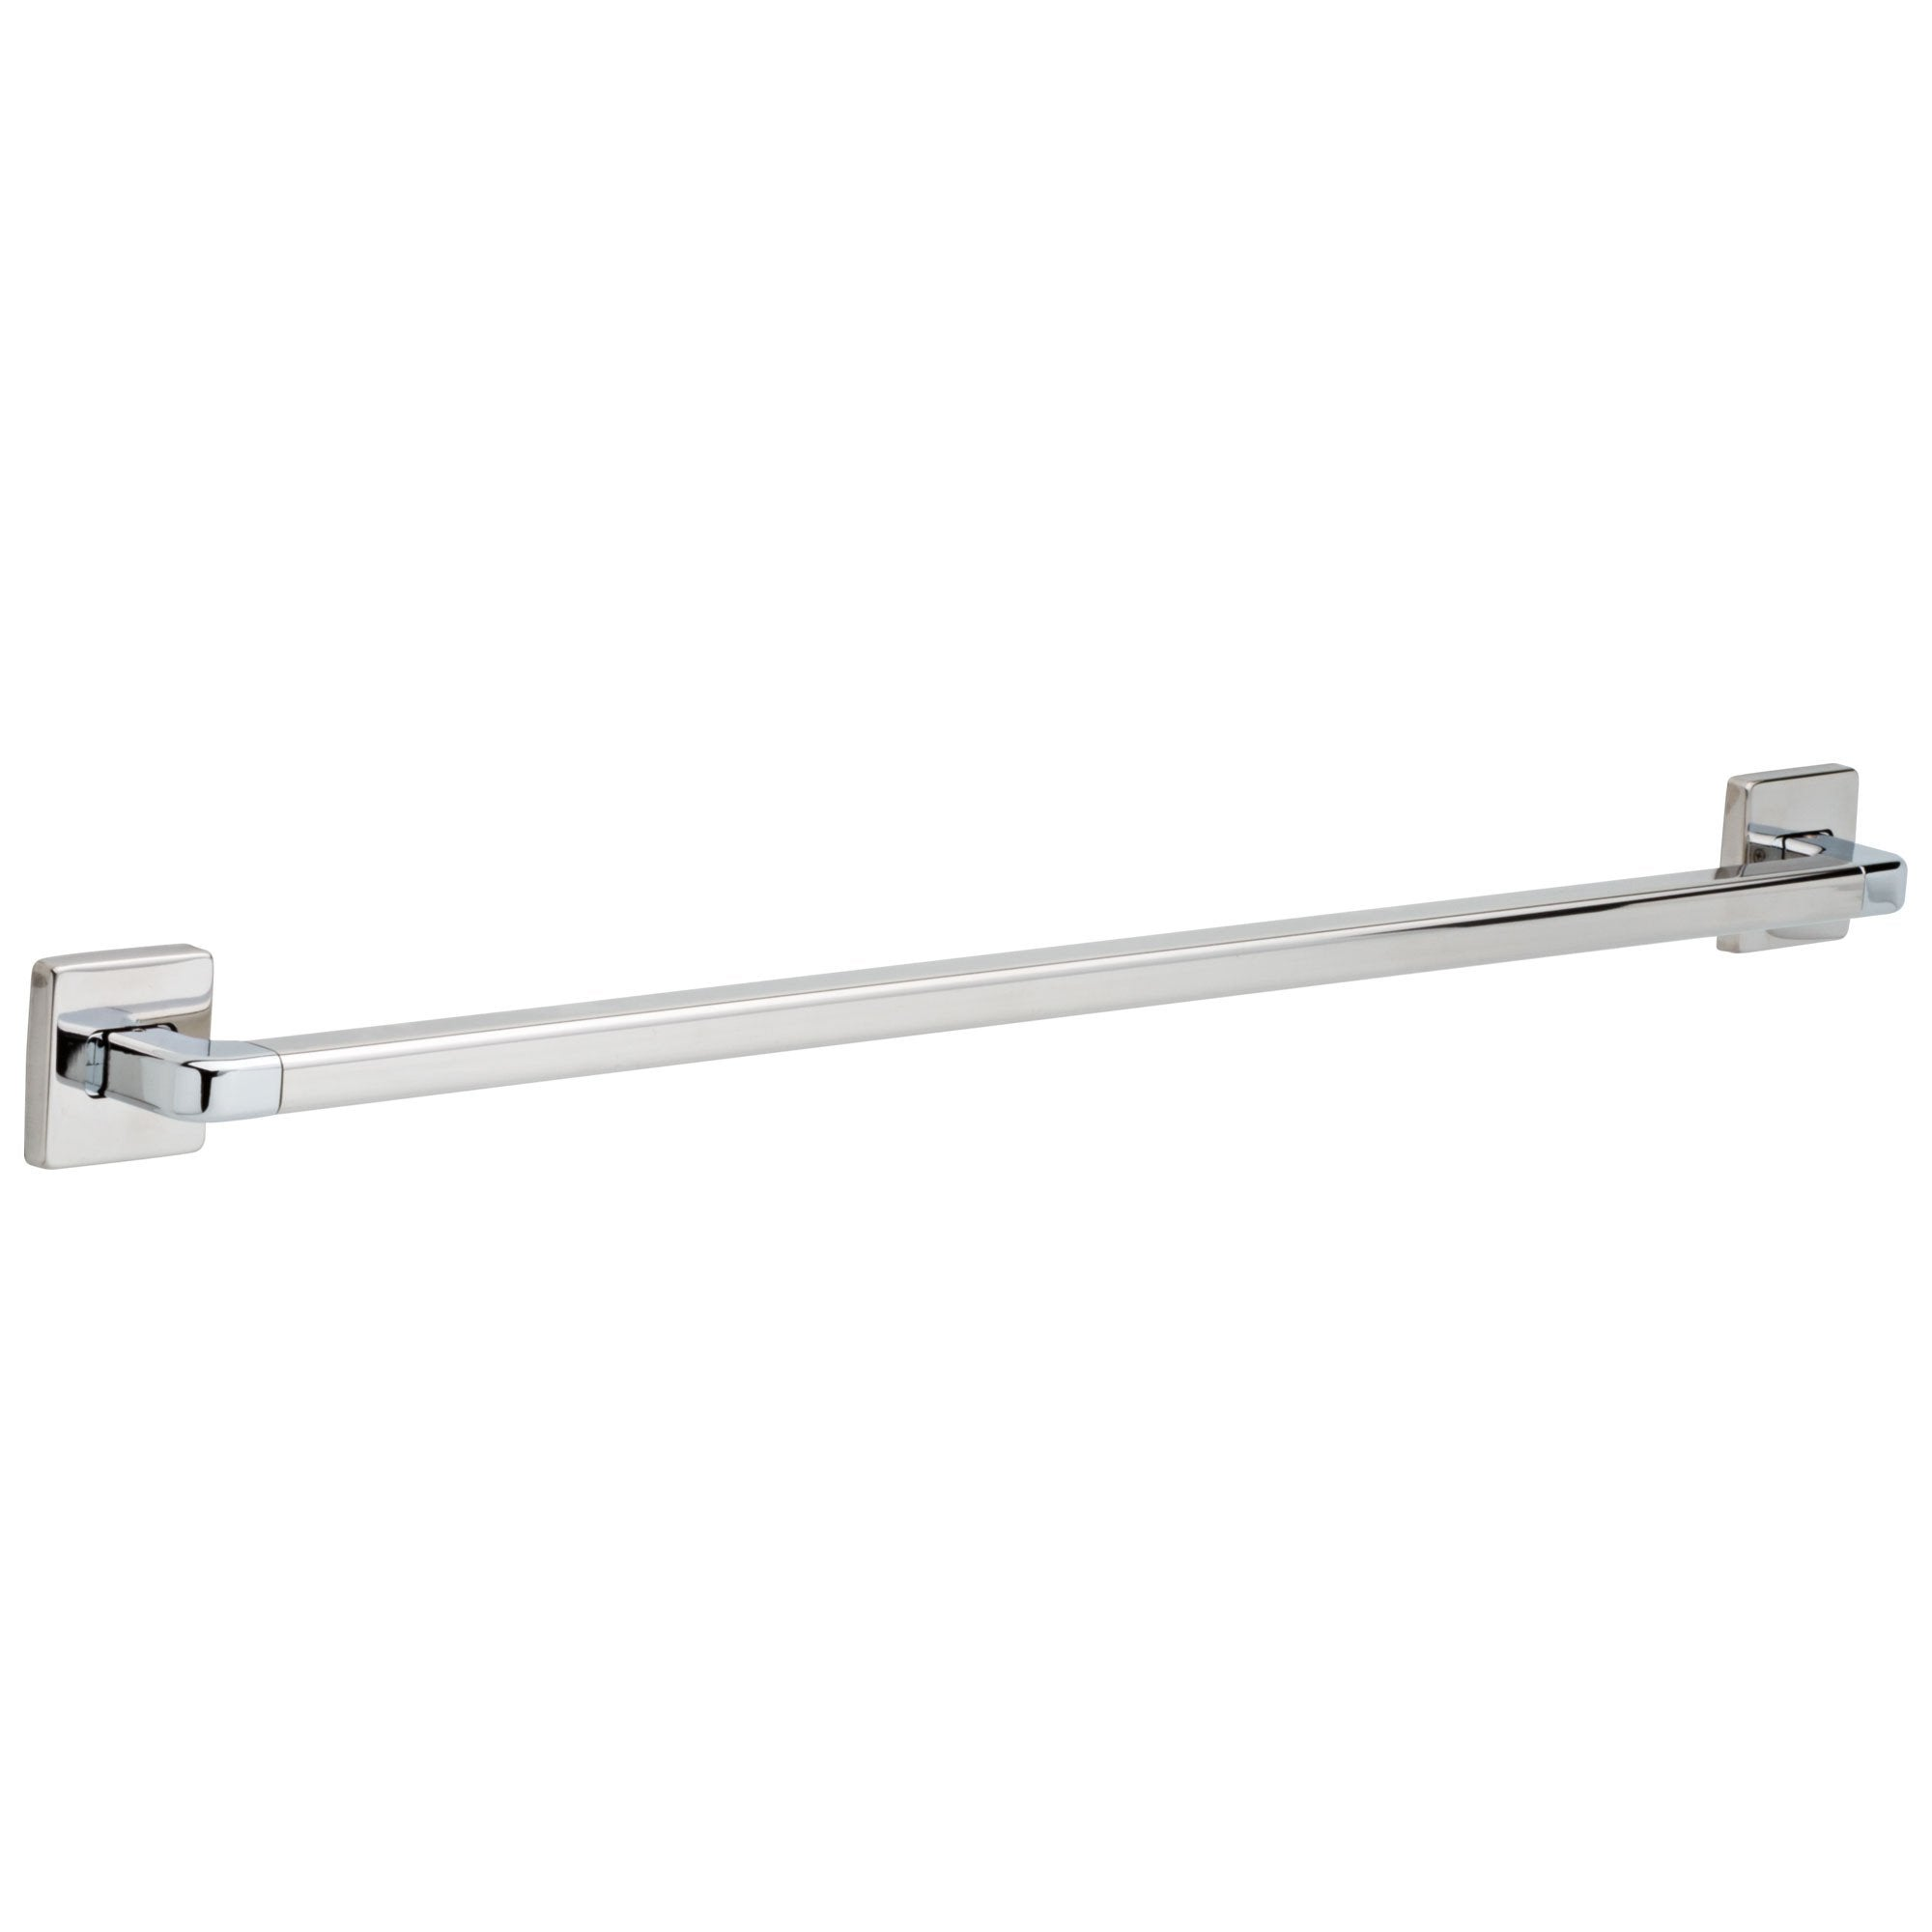 "Delta Bath Safety Collection Chrome Finish Angular Modern Decorative ADA Approved Wall Mount 36"" Long Grab Bar D41936"